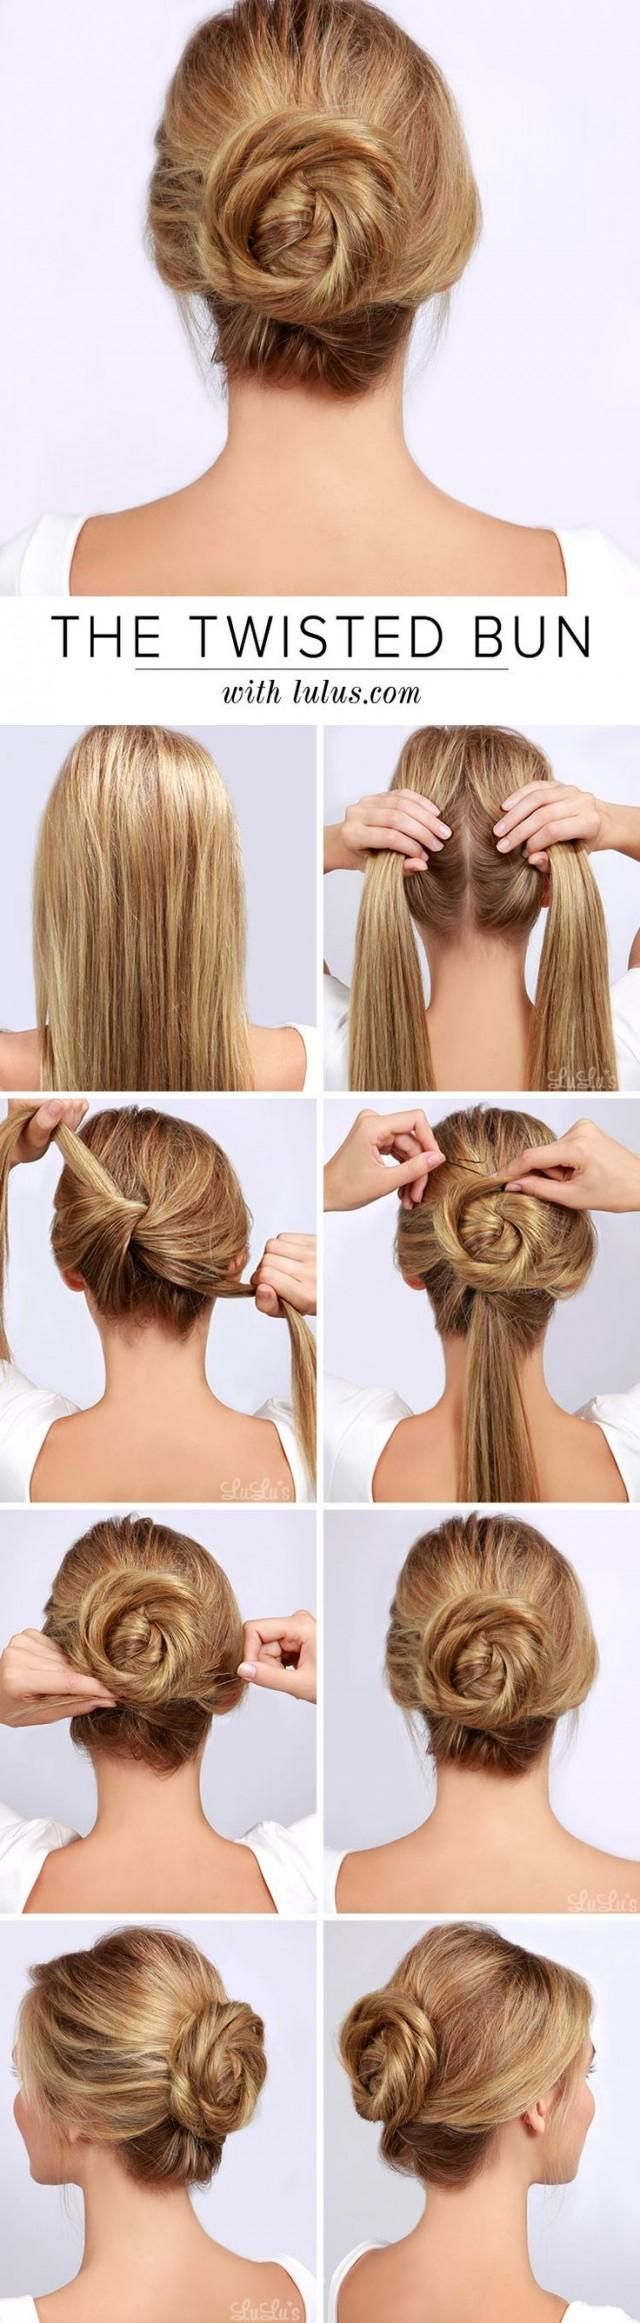 Easy Hairstyles Step By Step 15 Best Hair Style Images On Pinterest  Cute Hairstyles Hairstyle